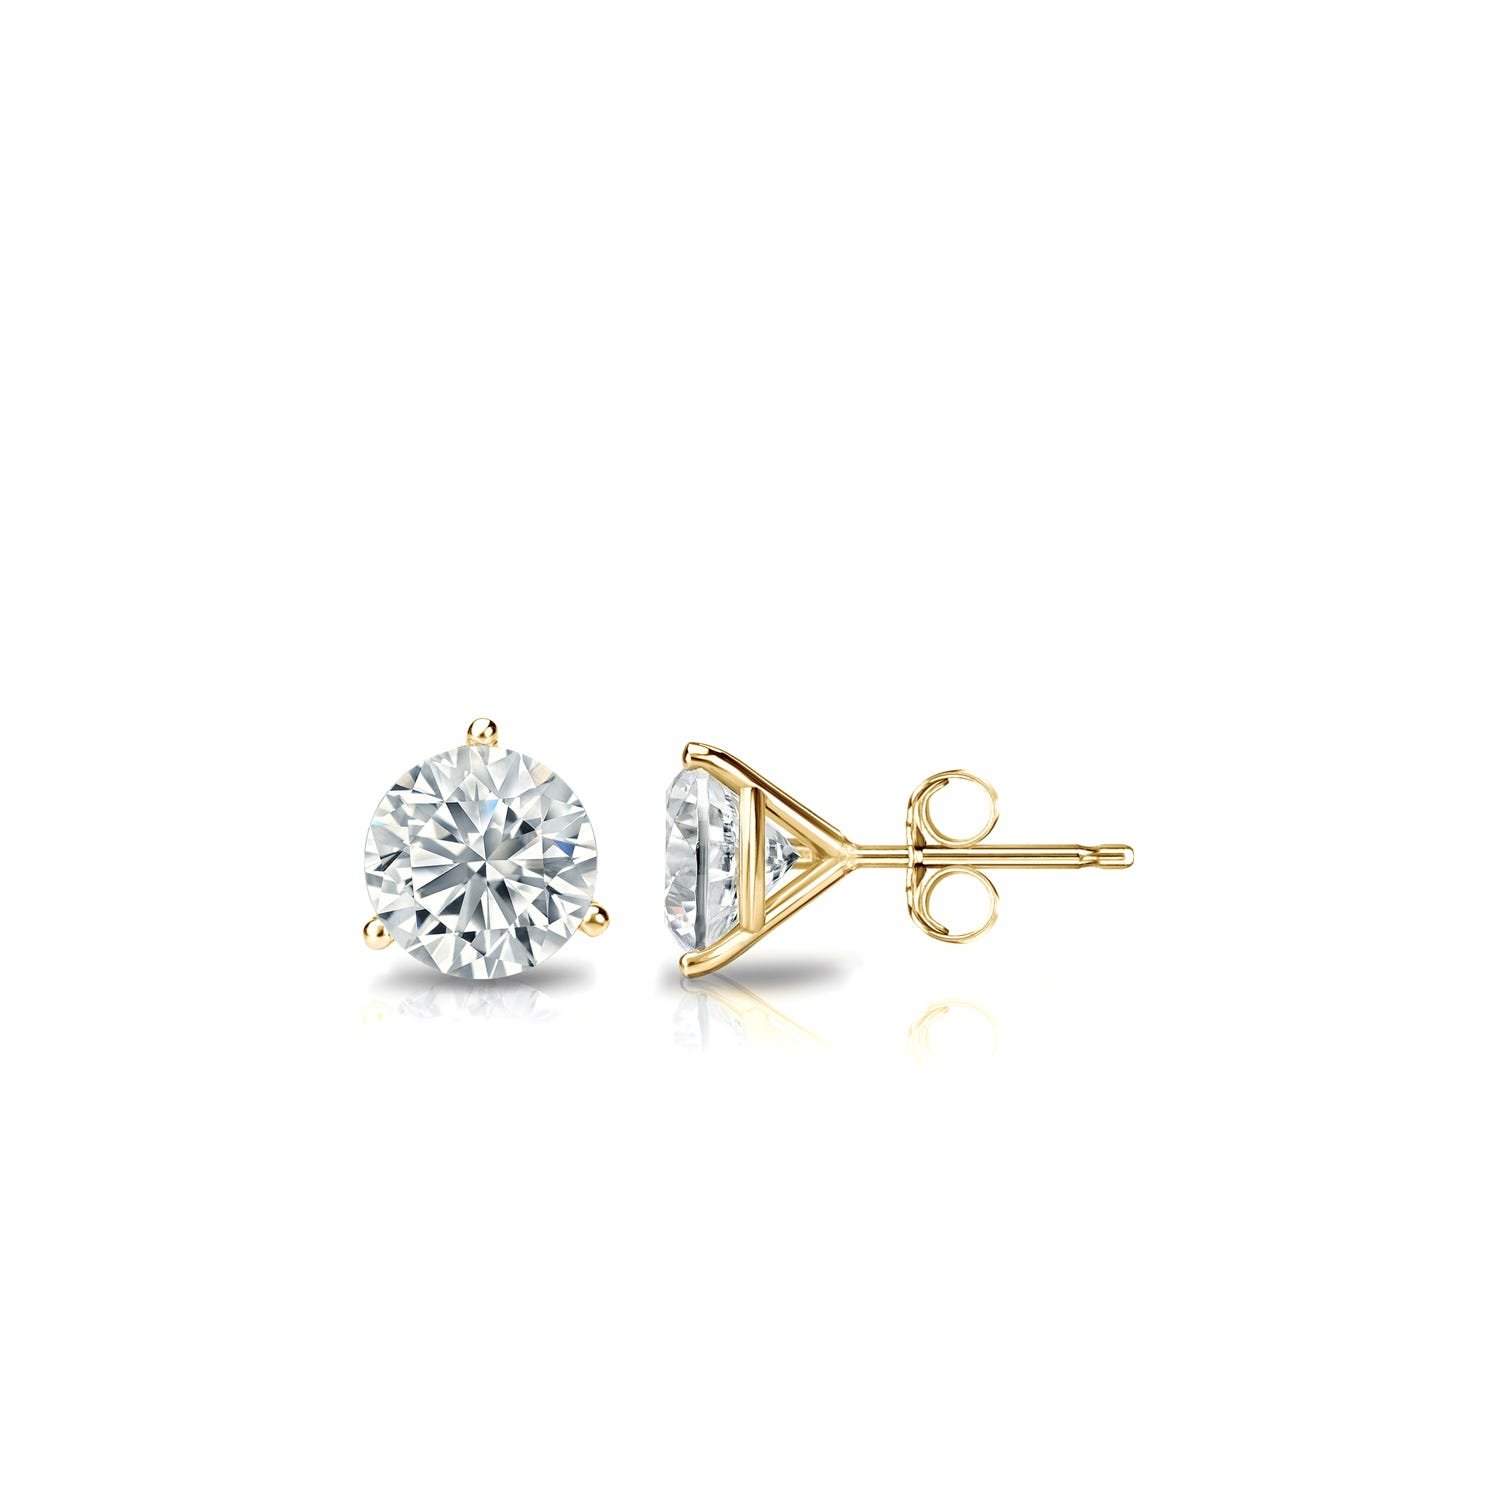 1/3 CTTW Round Diamond Solitaire Stud Earrings IJ VS2 in 18K Yellow Gold 3-Prong Setting